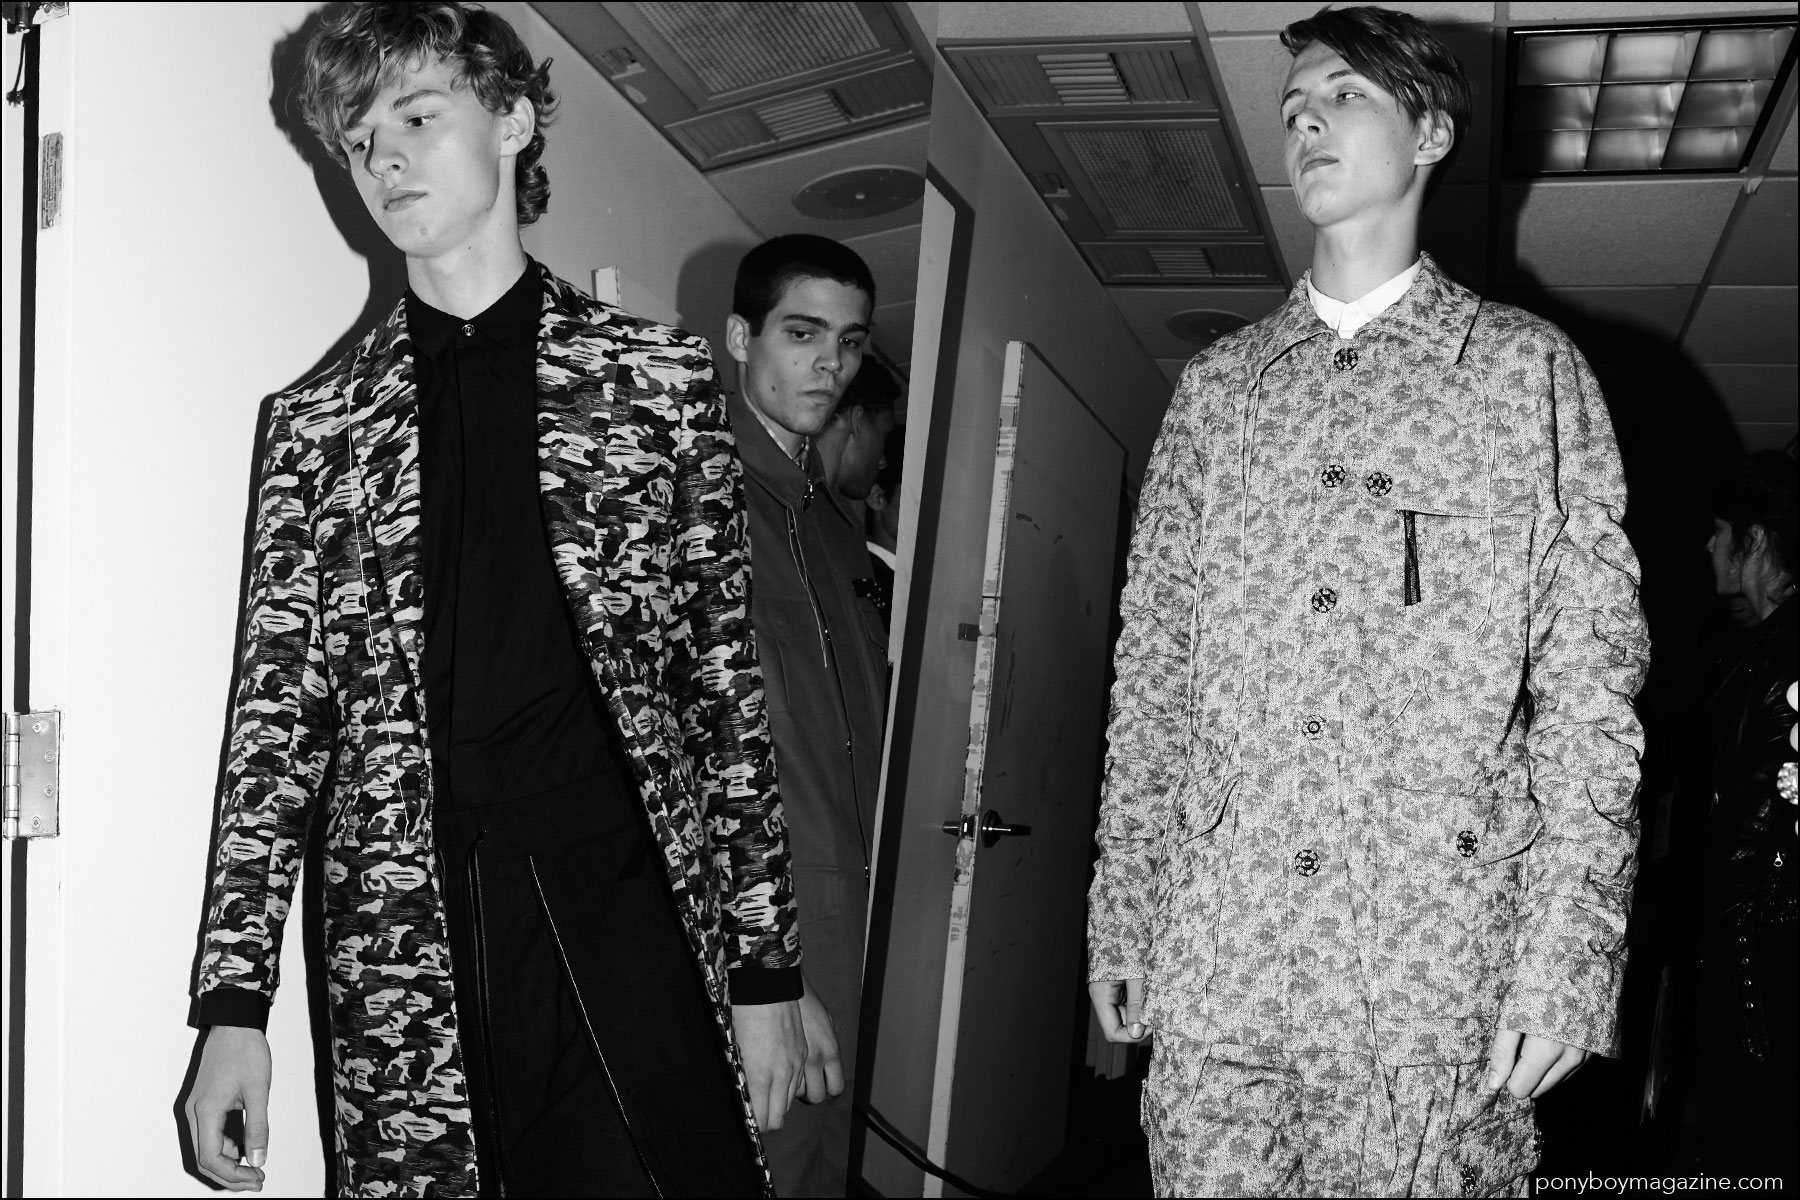 Military inspired jackets photographed backstage before models walk for Kenneth Ning Spring/Summer 2017 menswear show. Photography by Alexander Thompson for Ponyboy magazine New York.